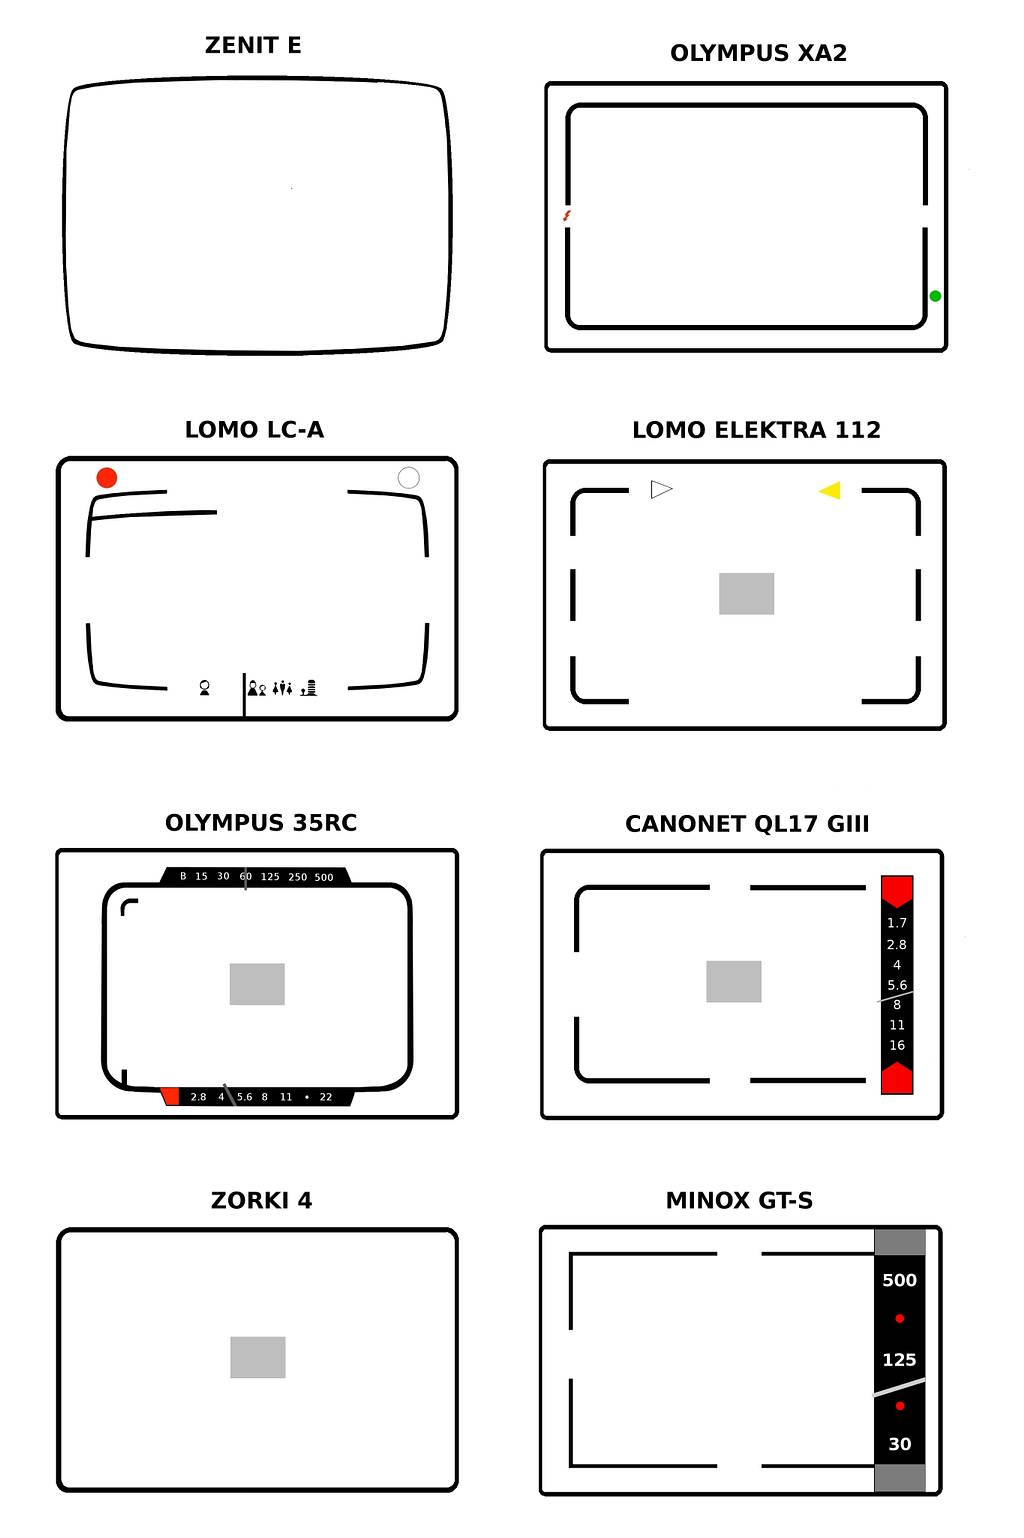 Cameras in Depth: Plain Glass Viewfinders